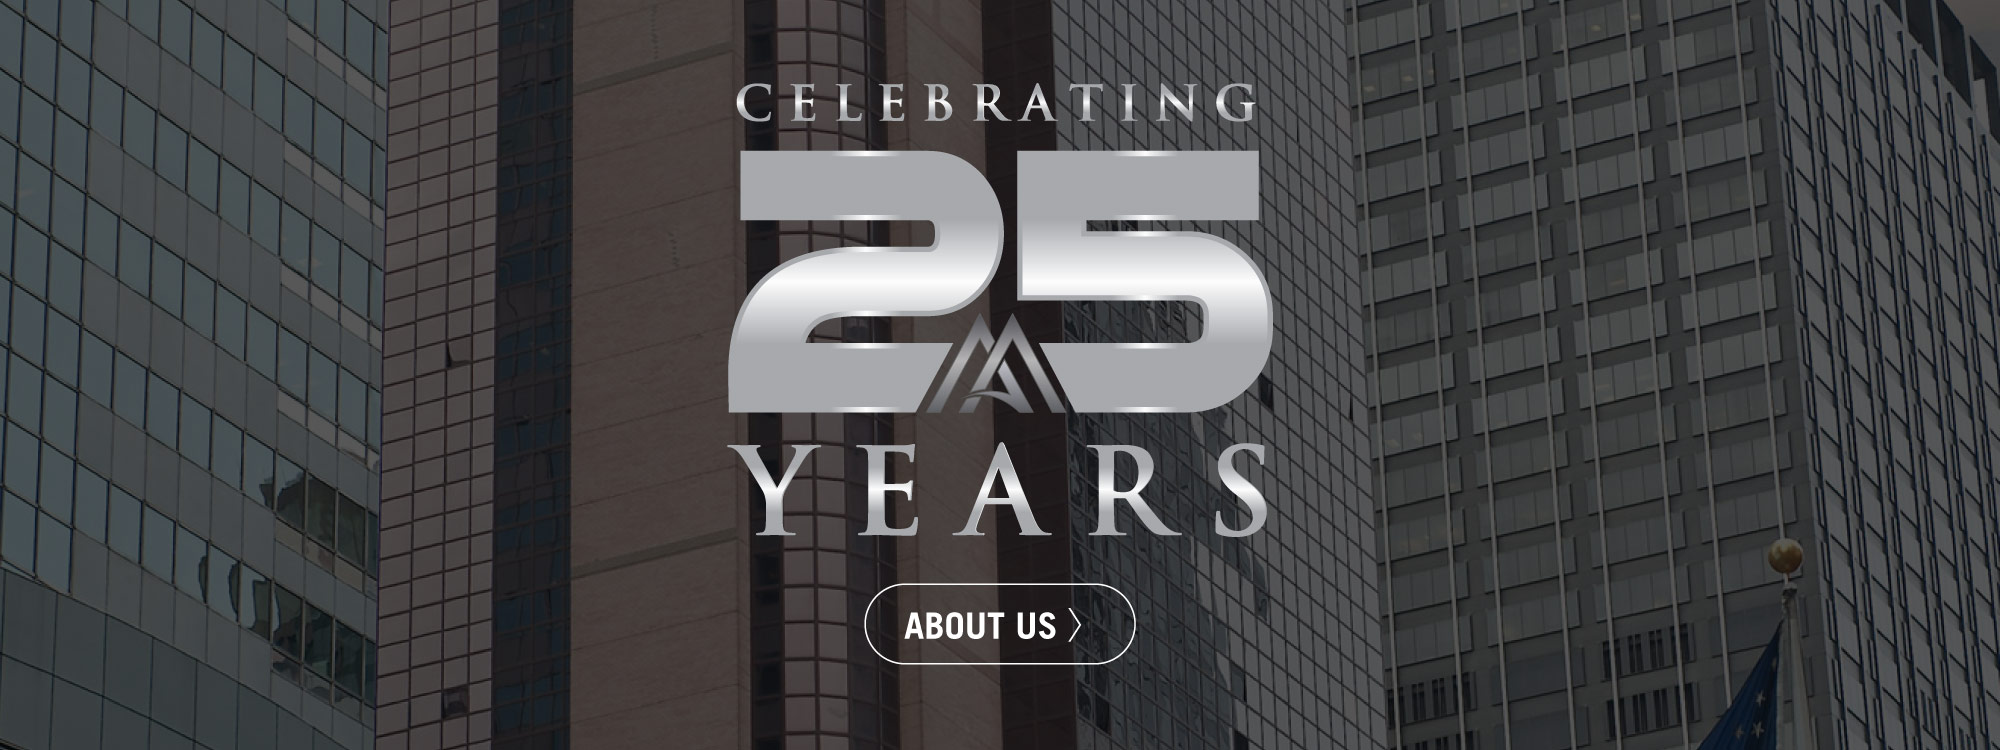 McManus & Associates - Celebrating 25 Years